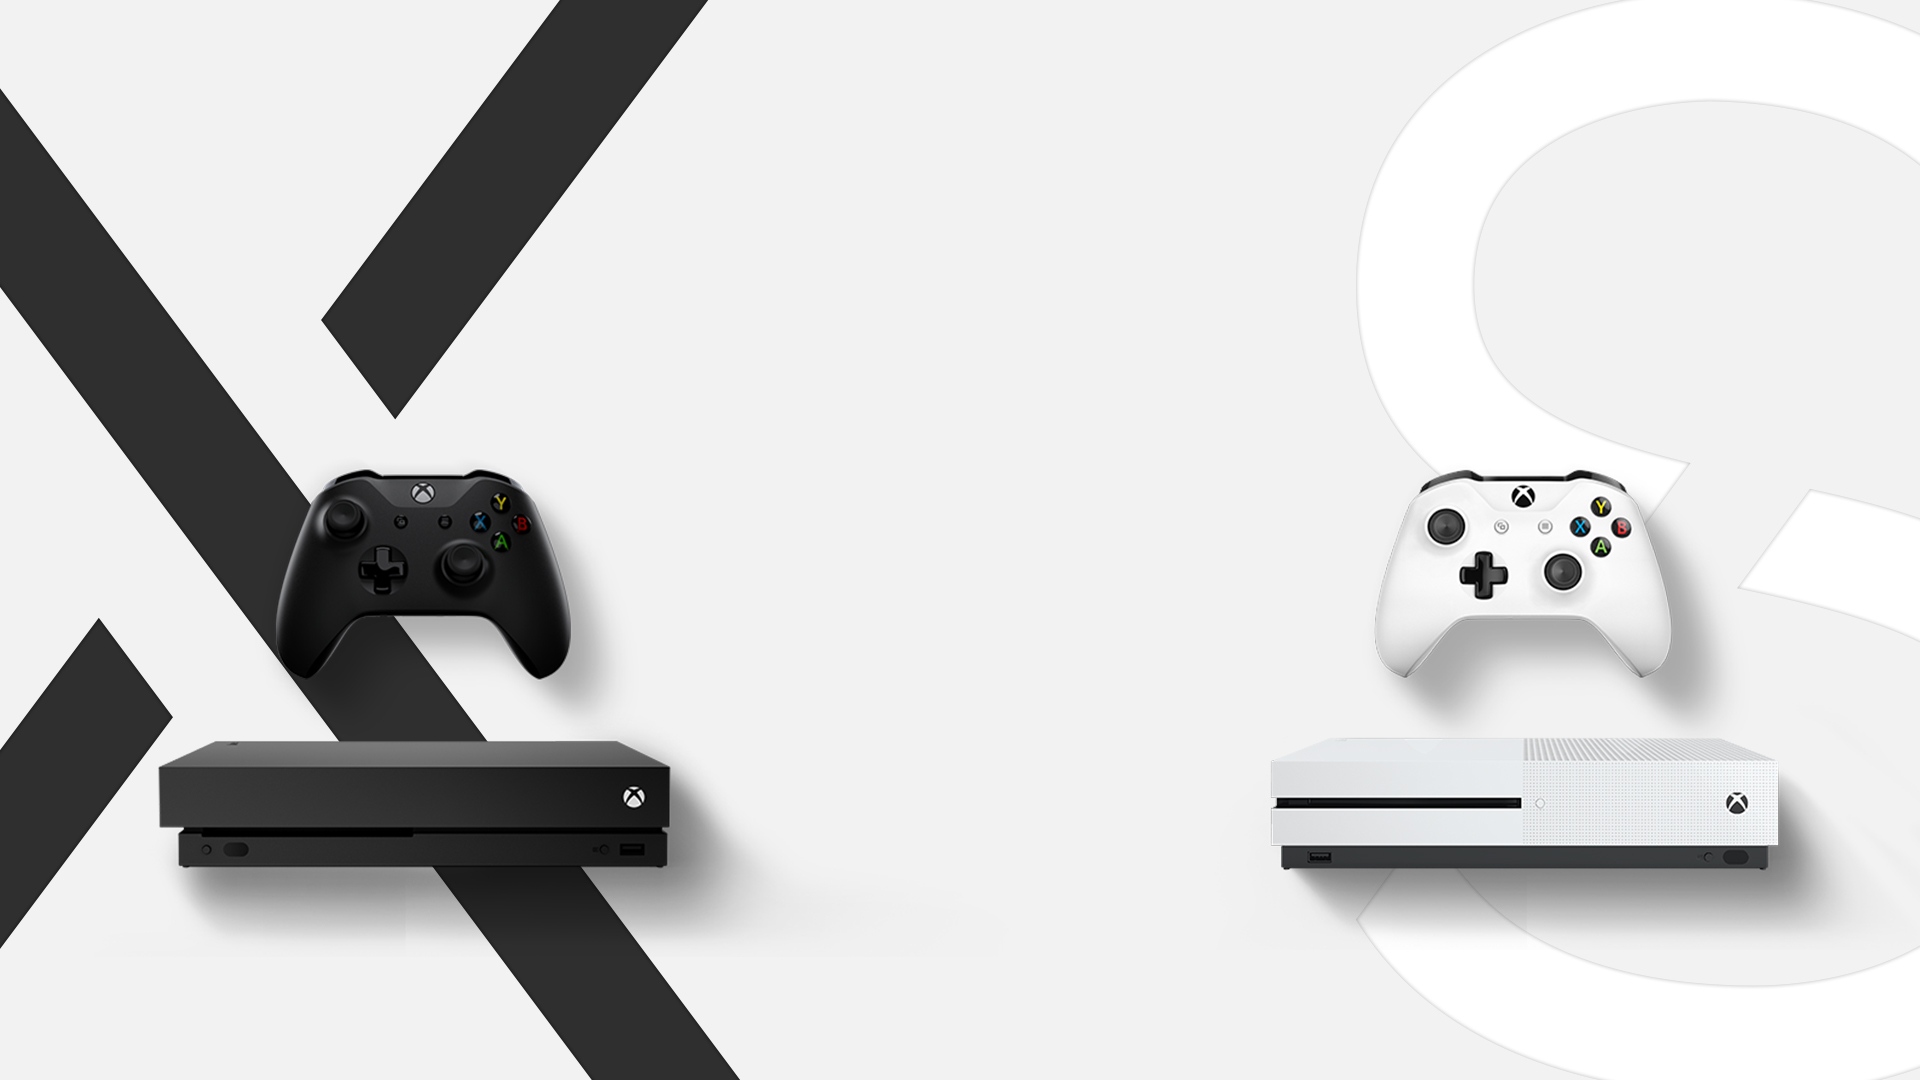 People Buying Fewer Xbox Consoles But Microsoft Is Still Doing Quite Well